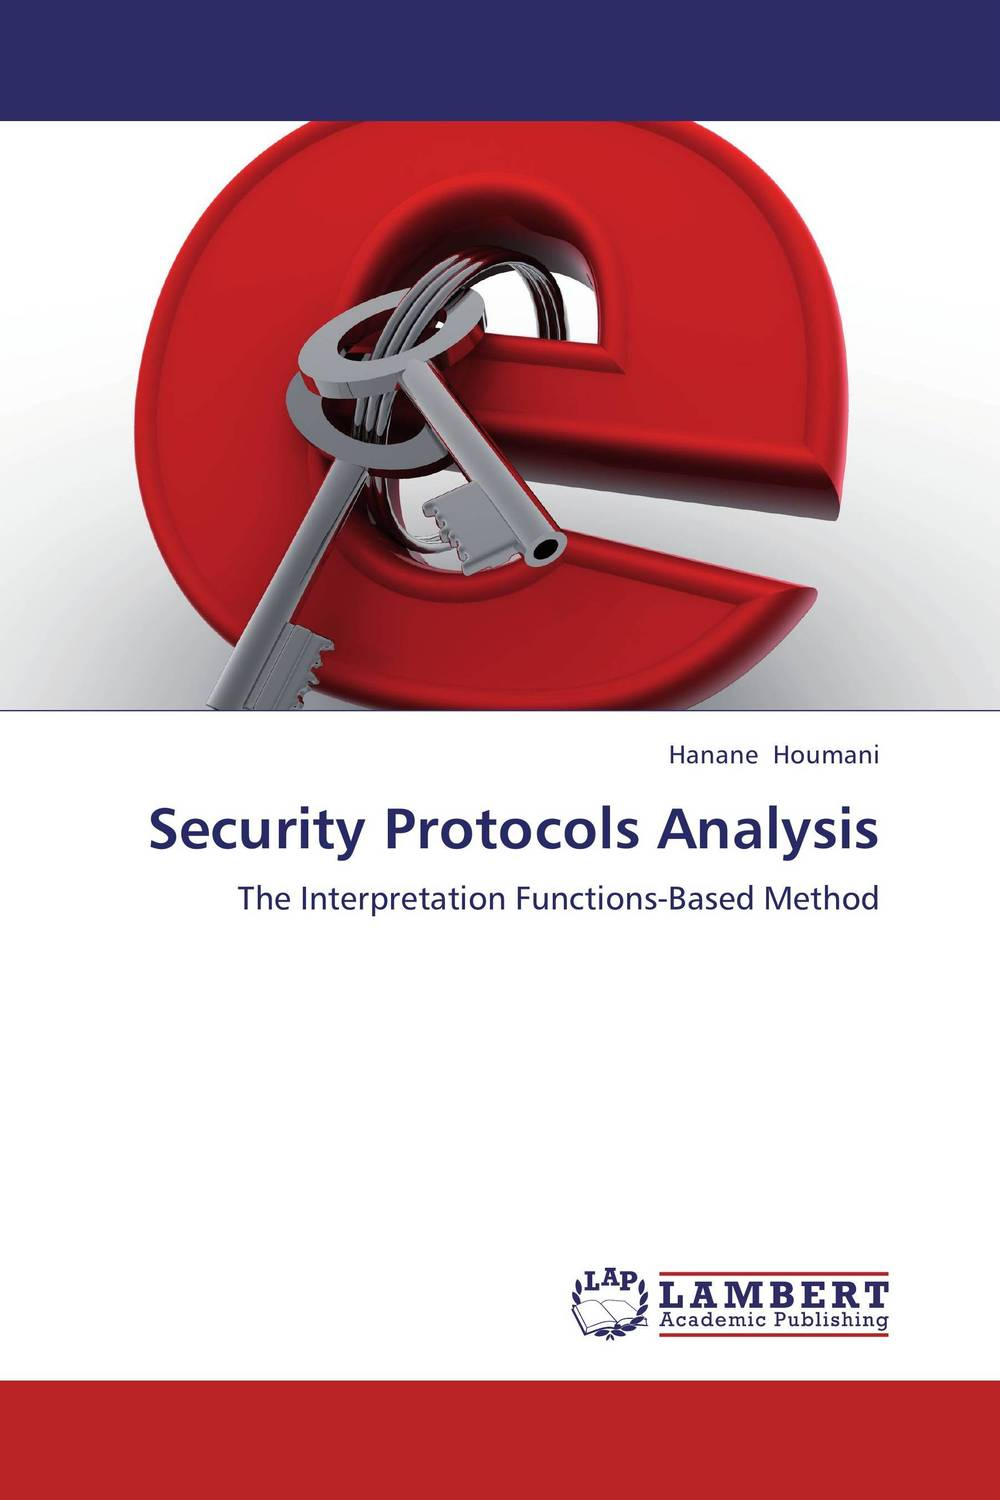 Security Protocols Analysis food e commerce